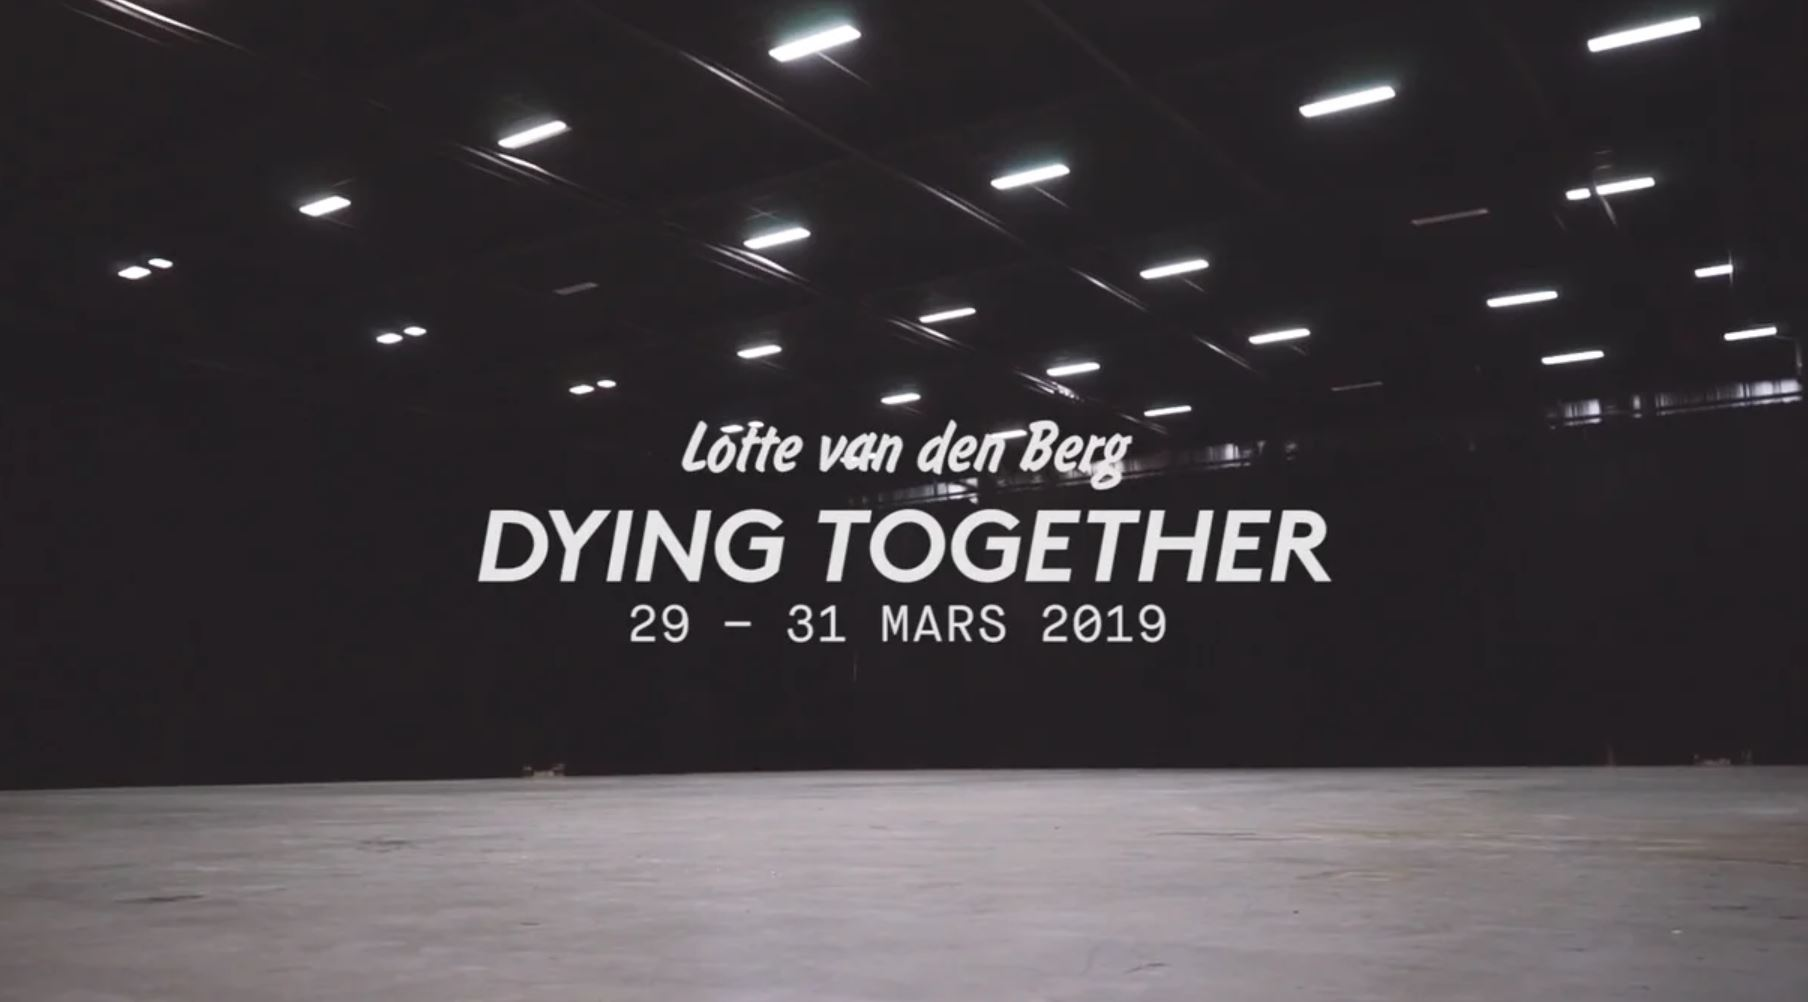 Dying together - Nanterre-Amandiers